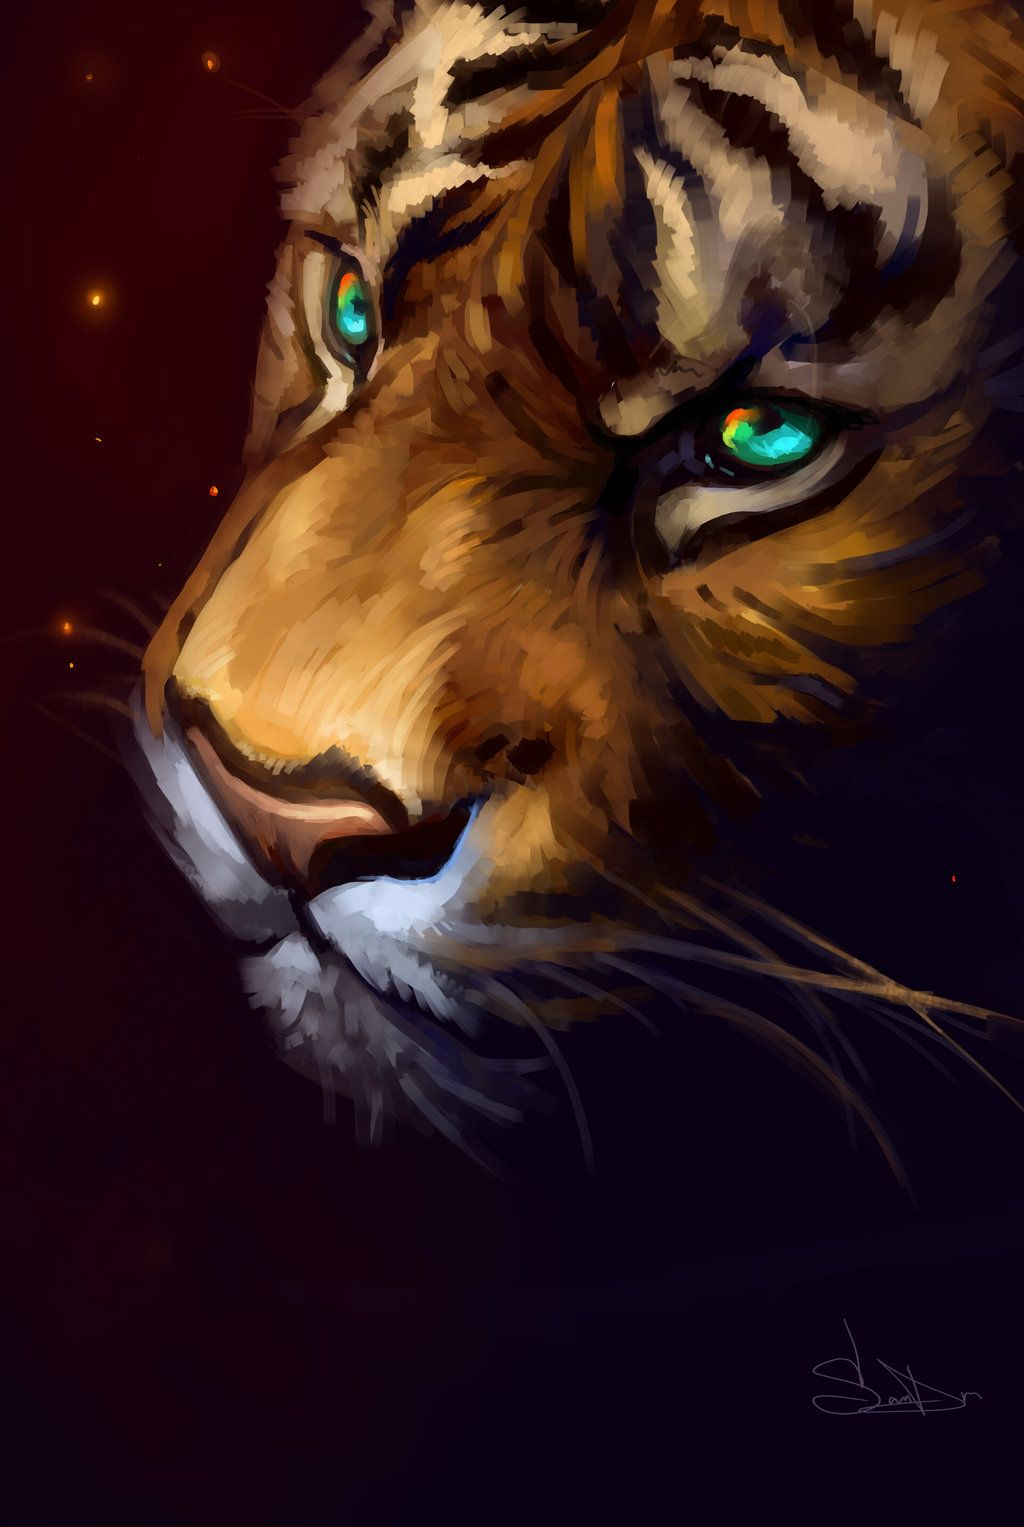 Tiger by SalamanDra-S.deviantart.com on @DeviantArt | Art ...